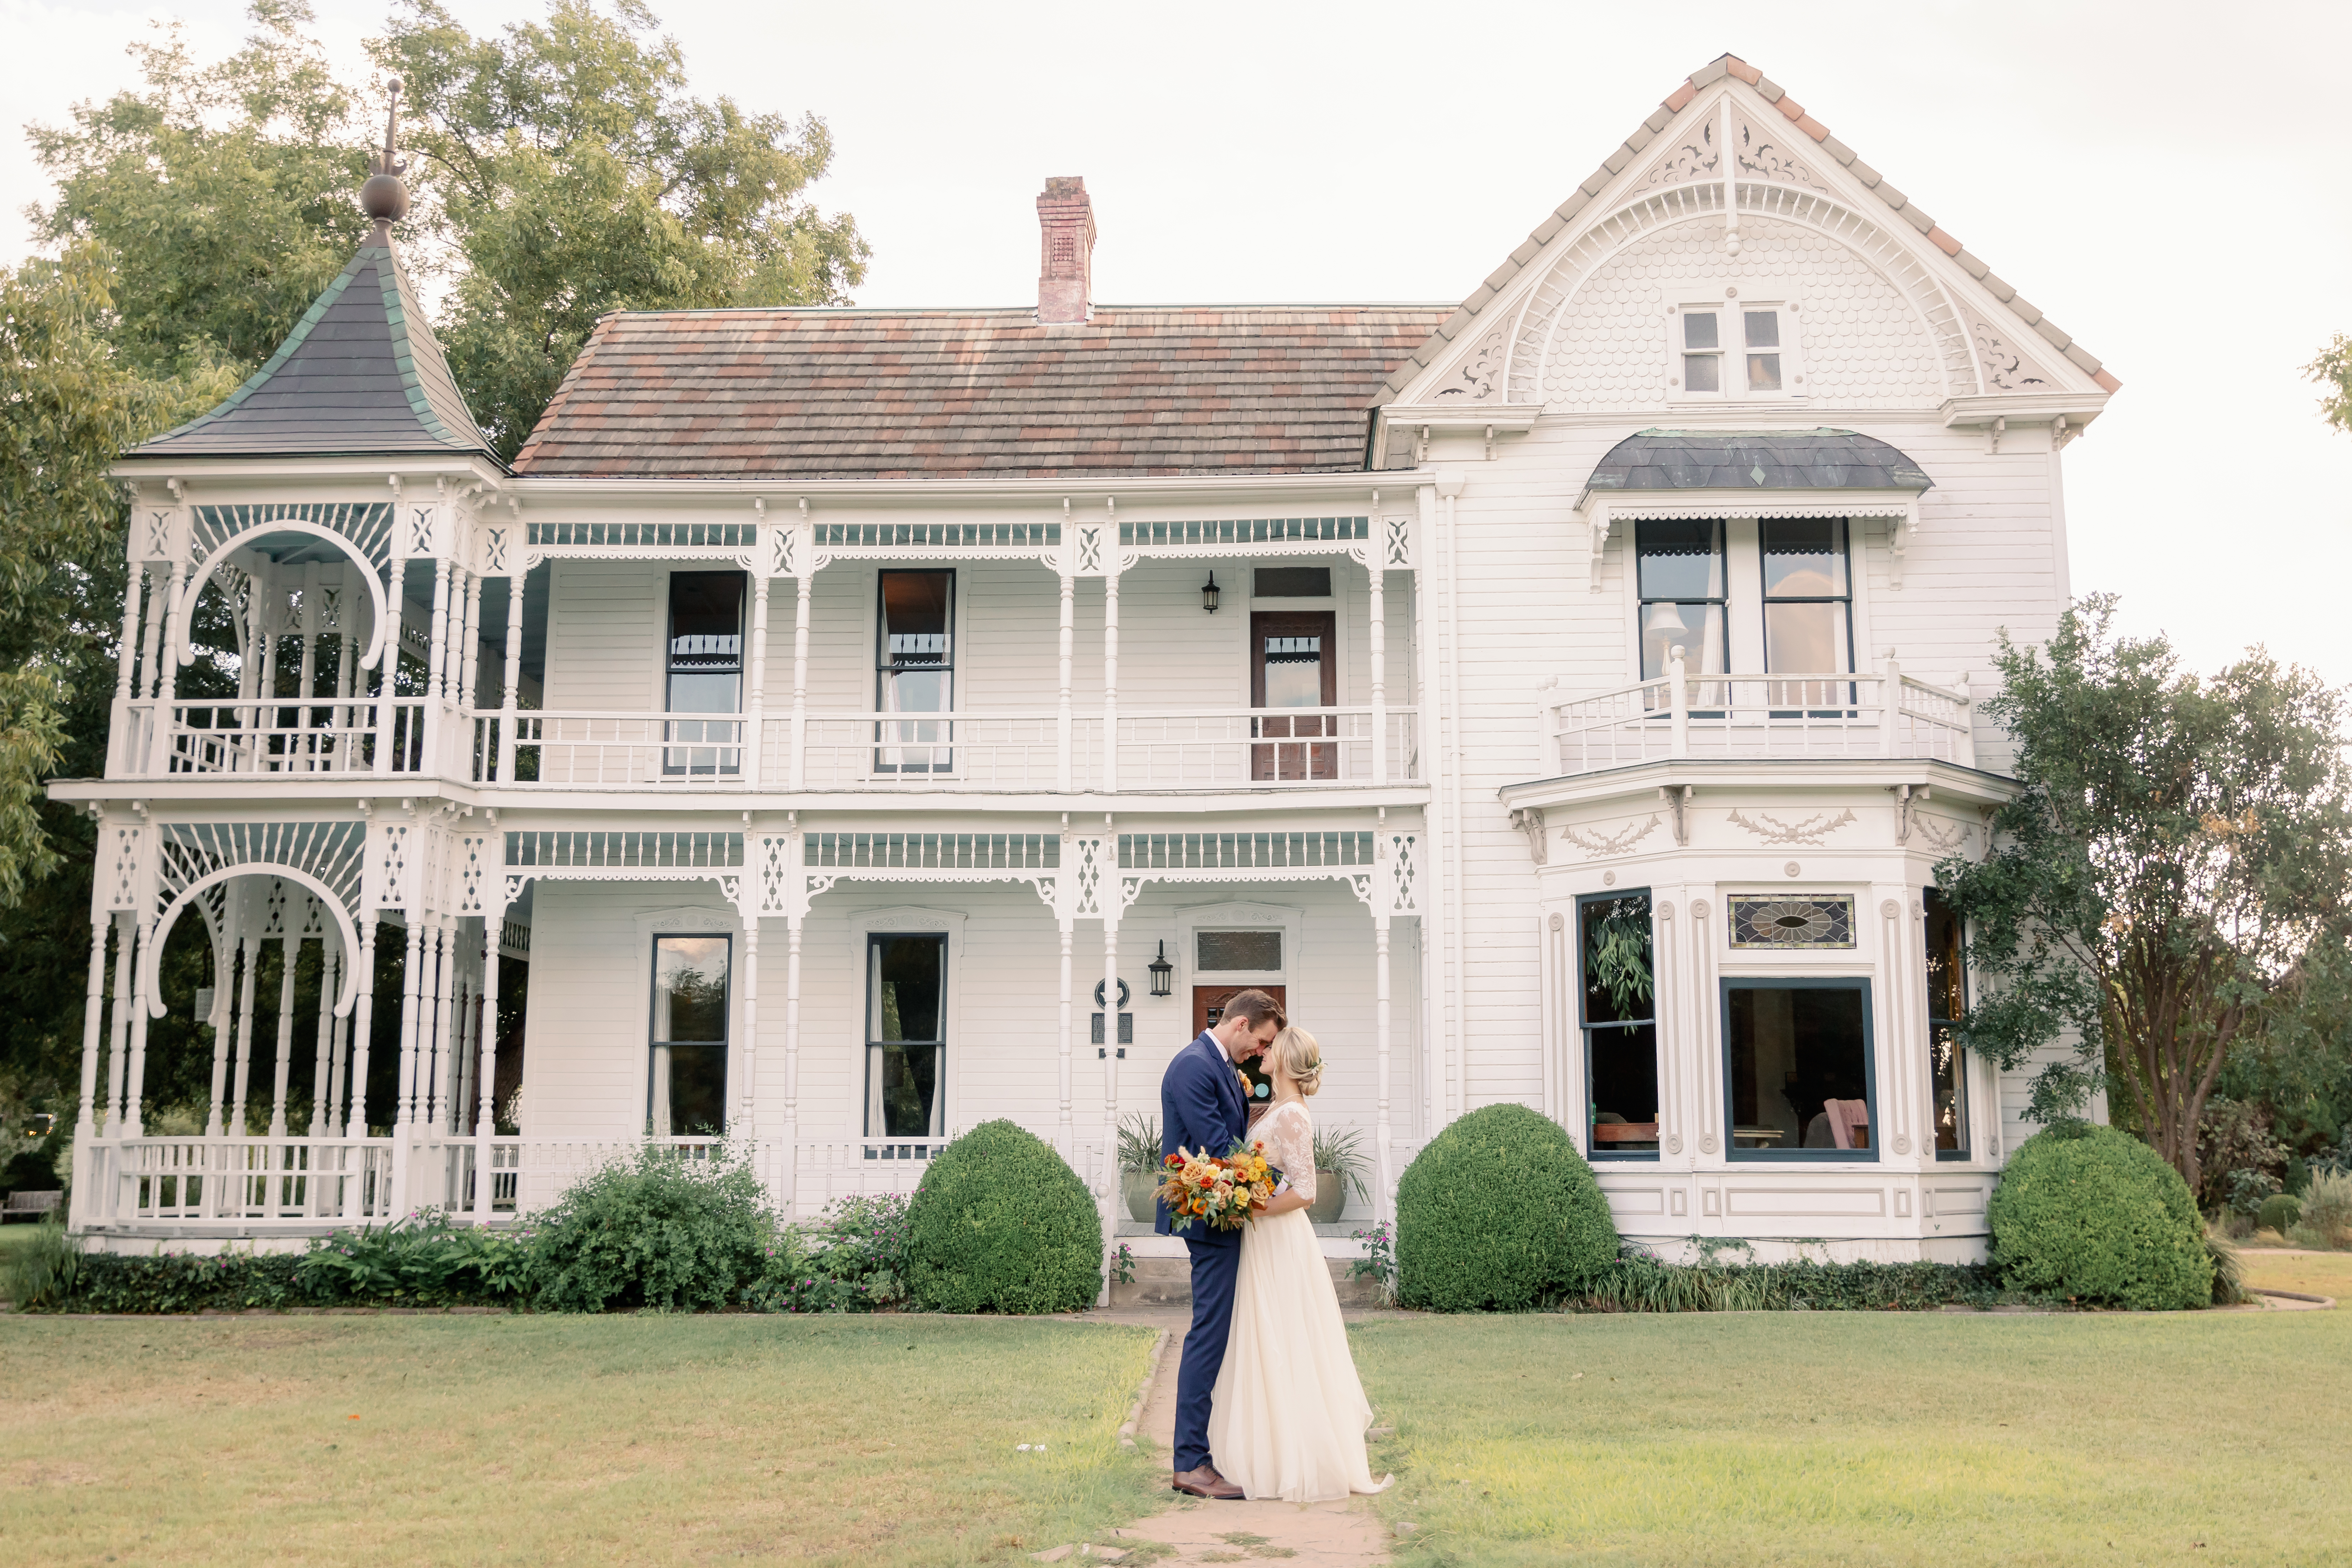 Jean + Logan | Austin, Texas | Barr Mansion